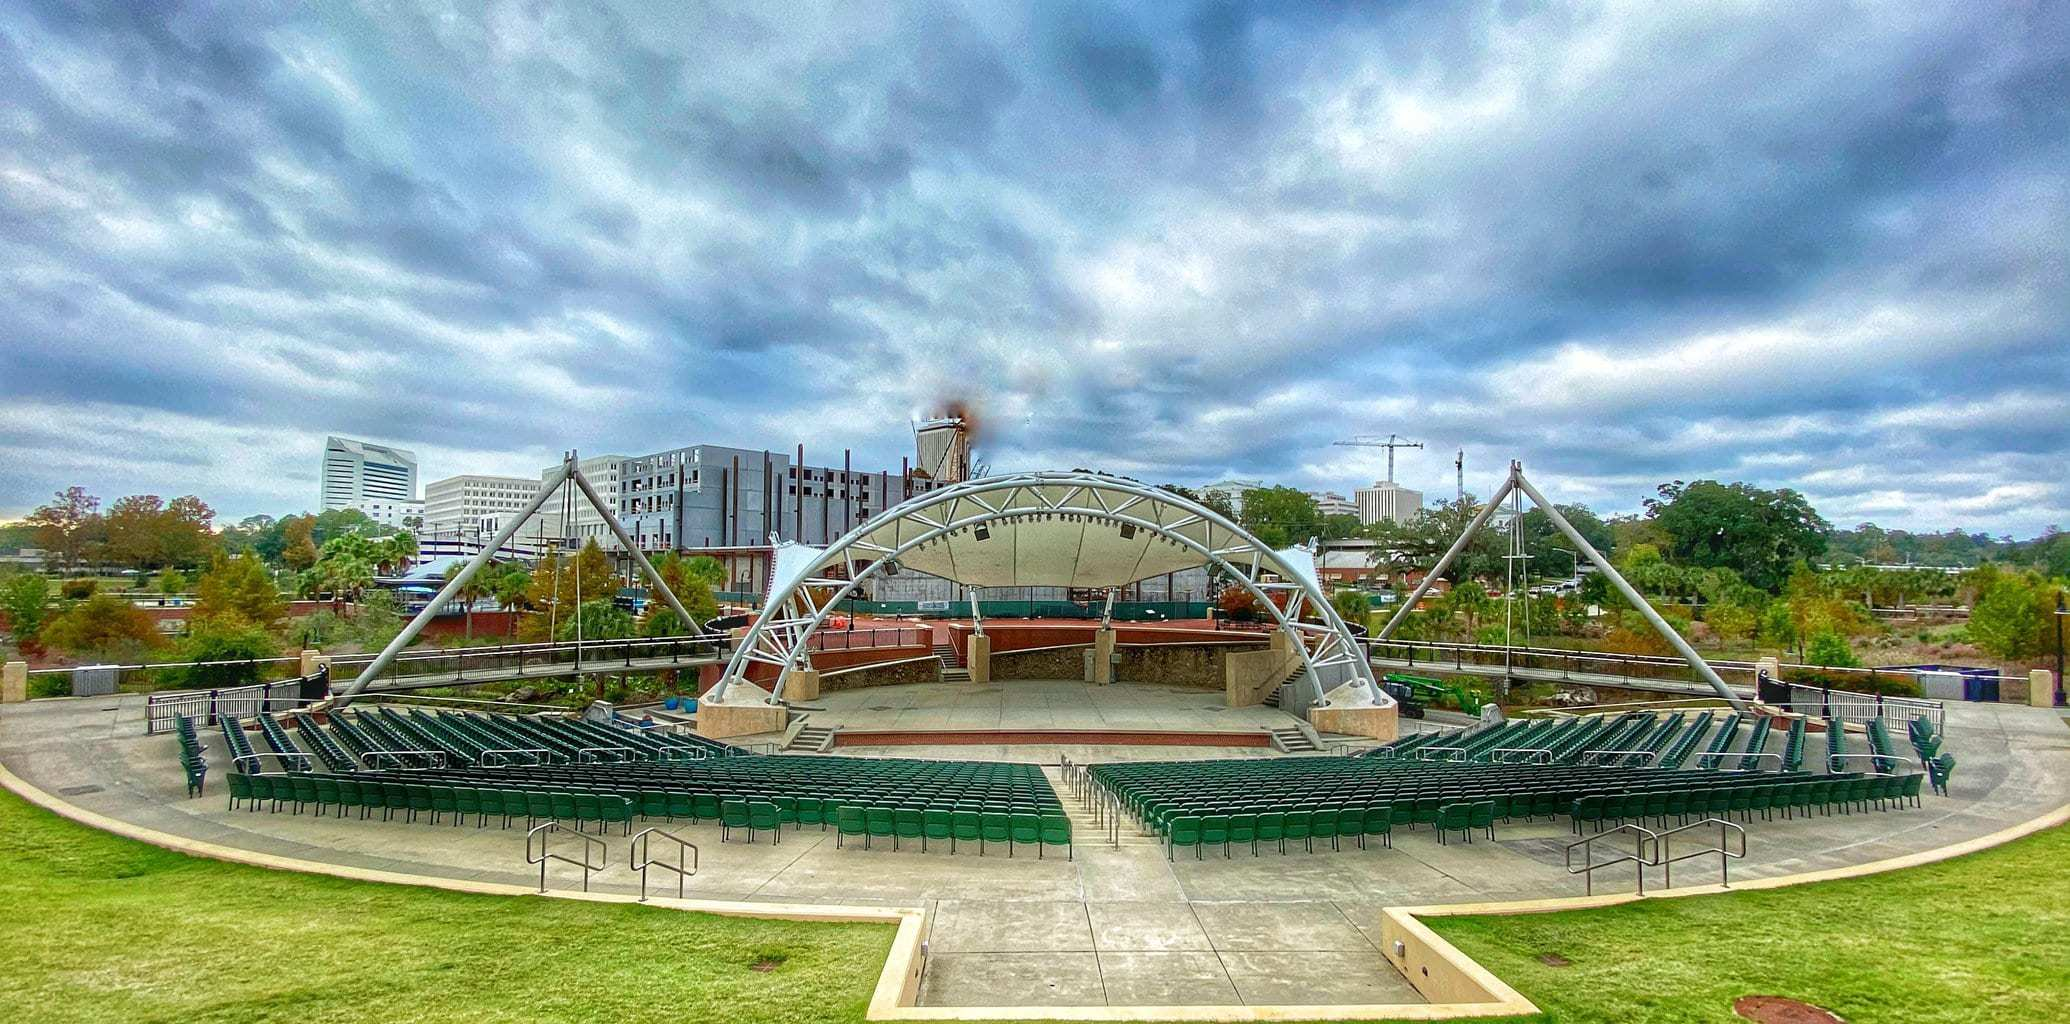 Capital City Amphitheater